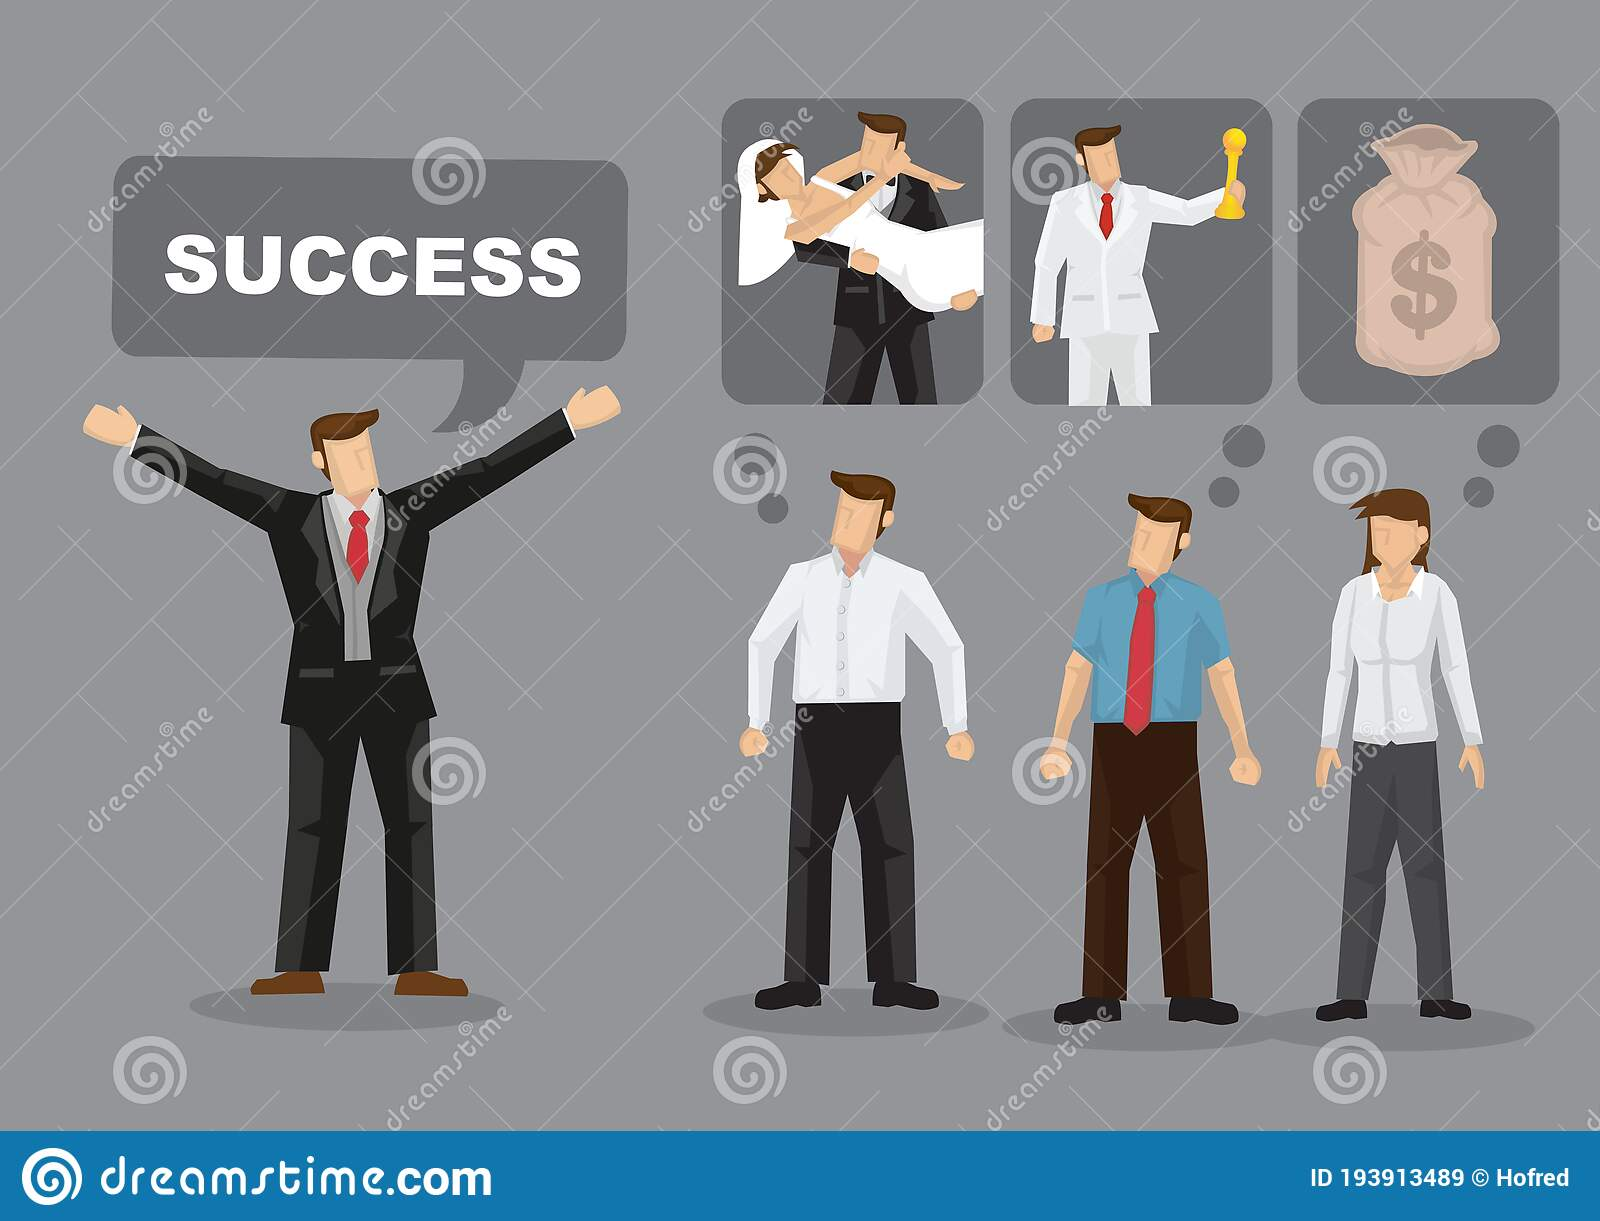 Different Meanings For Success Cartoon Vector Illustration Stock Vector Illustration Of Aspiration Drawing 193913489